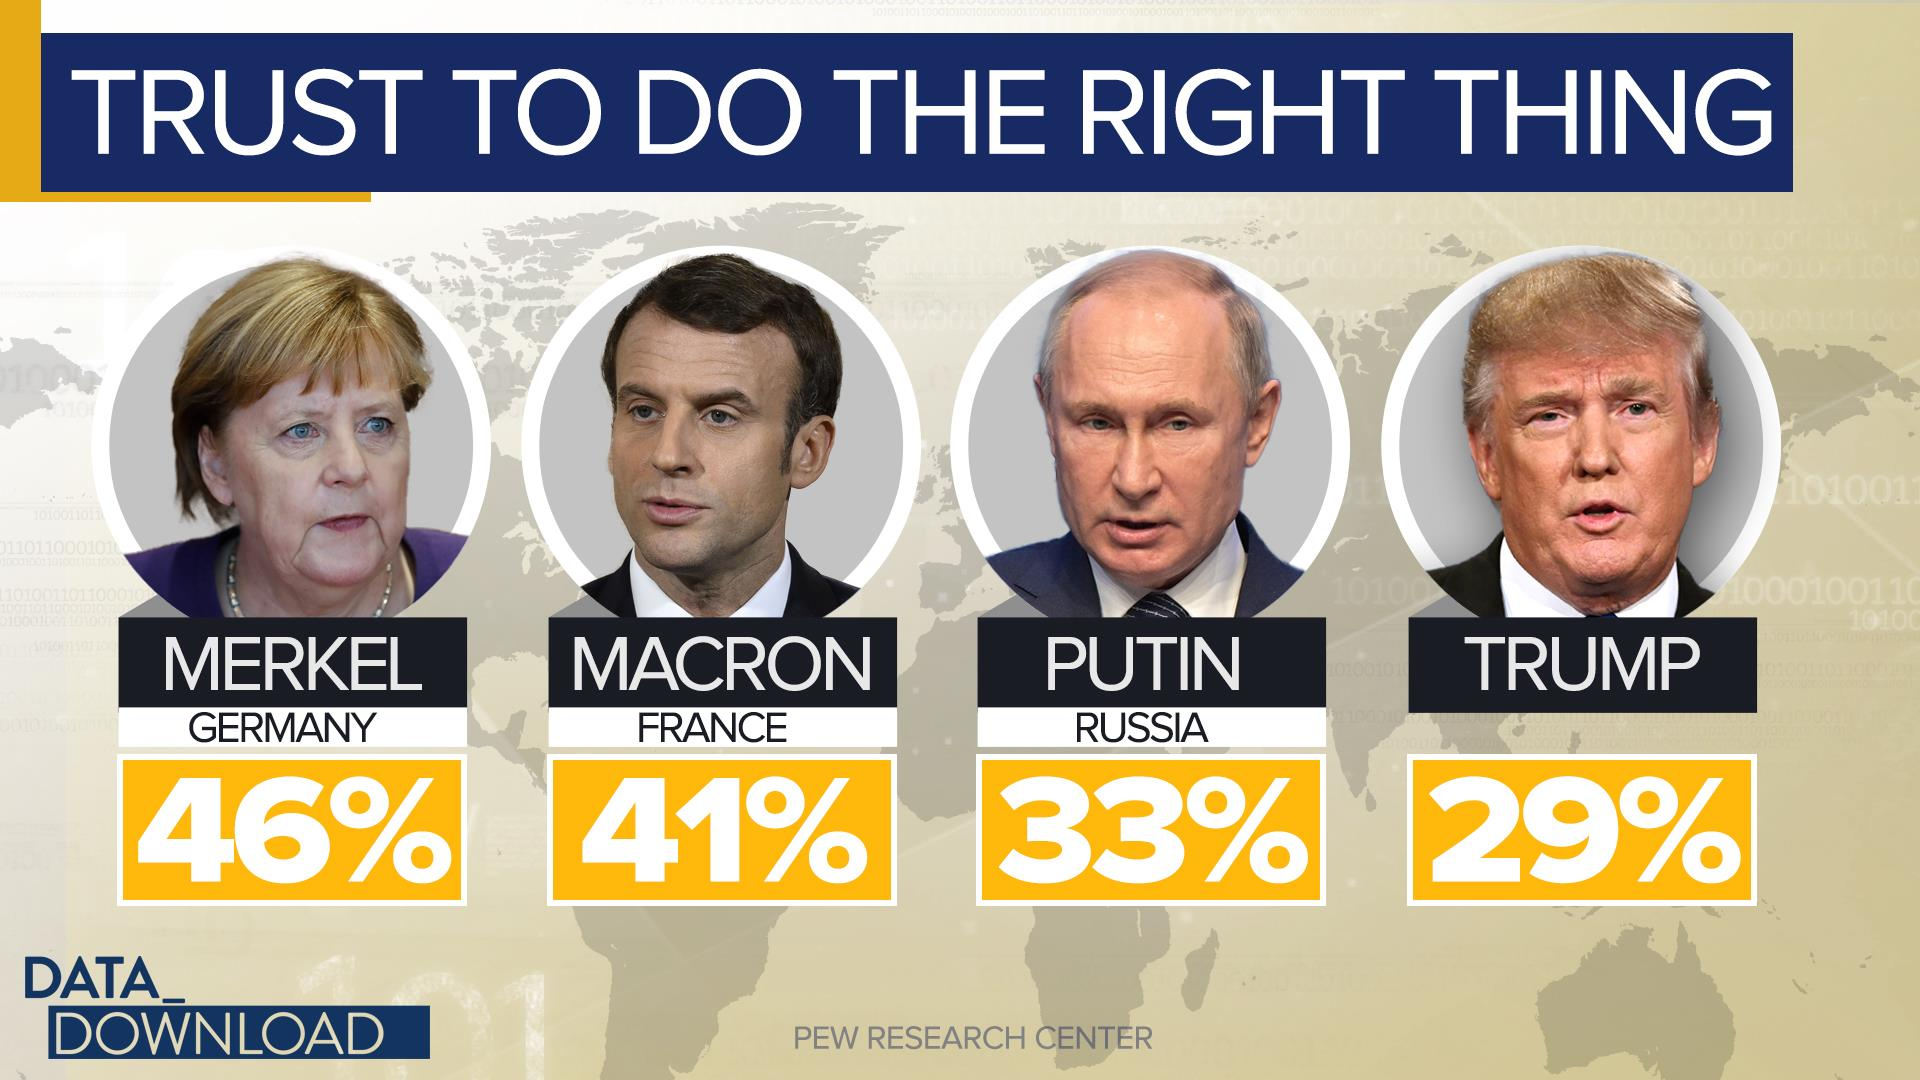 Foreign leaders top Trump on trust, new survey finds